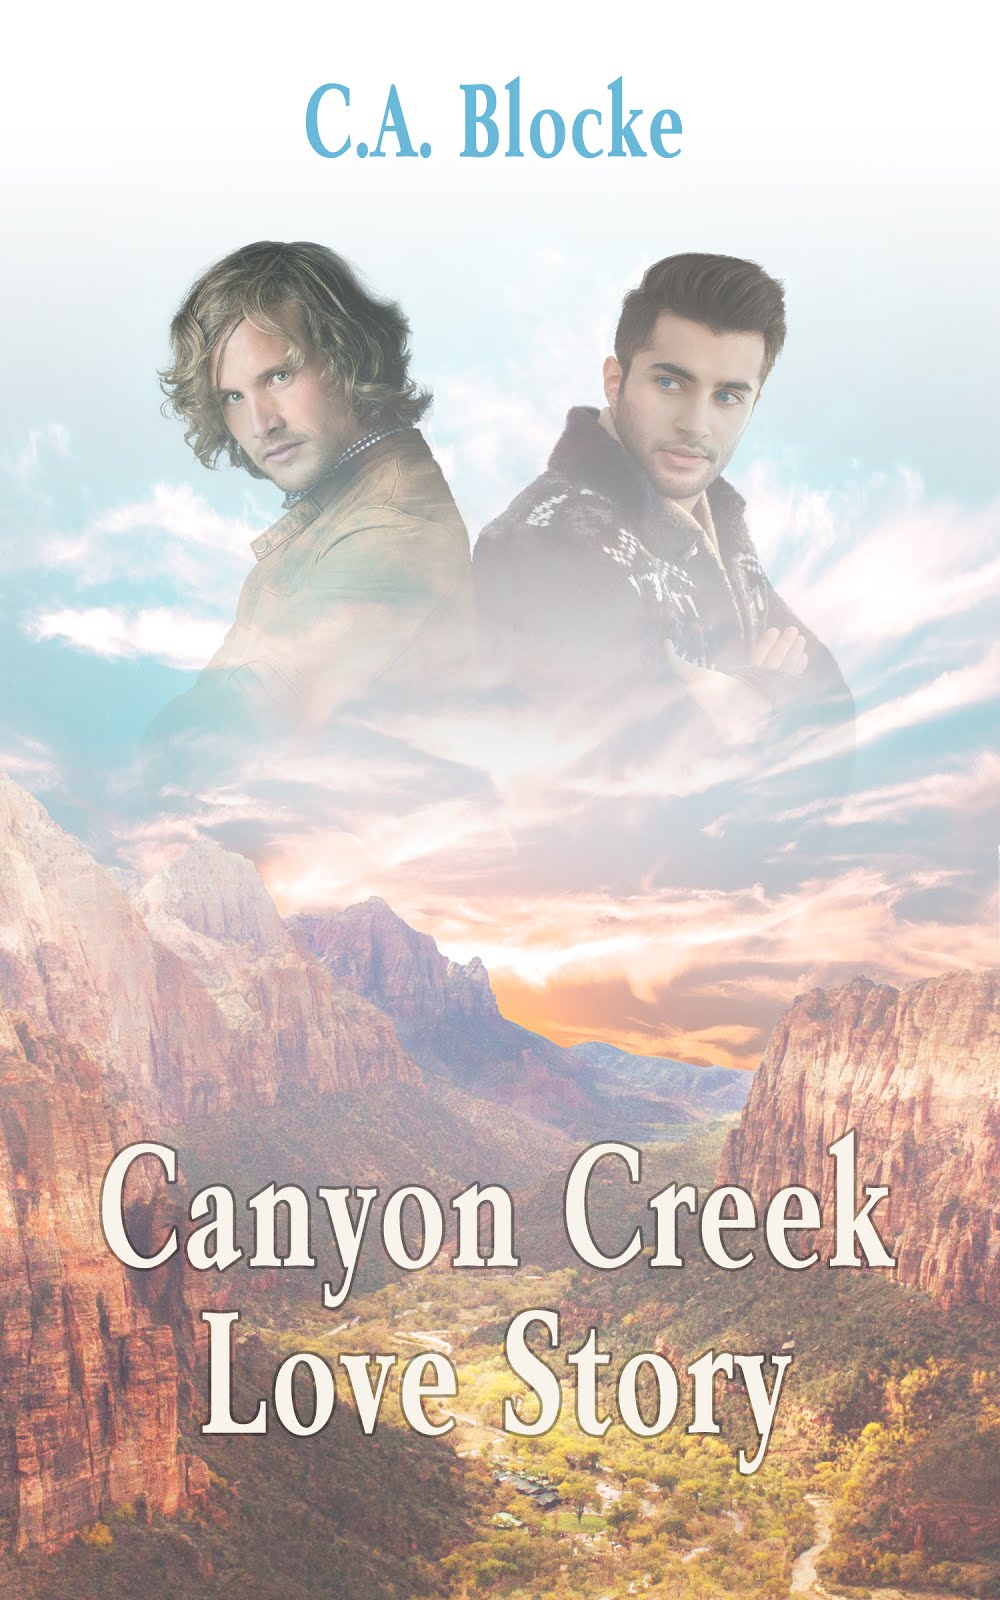 Canyon Creek Love Story